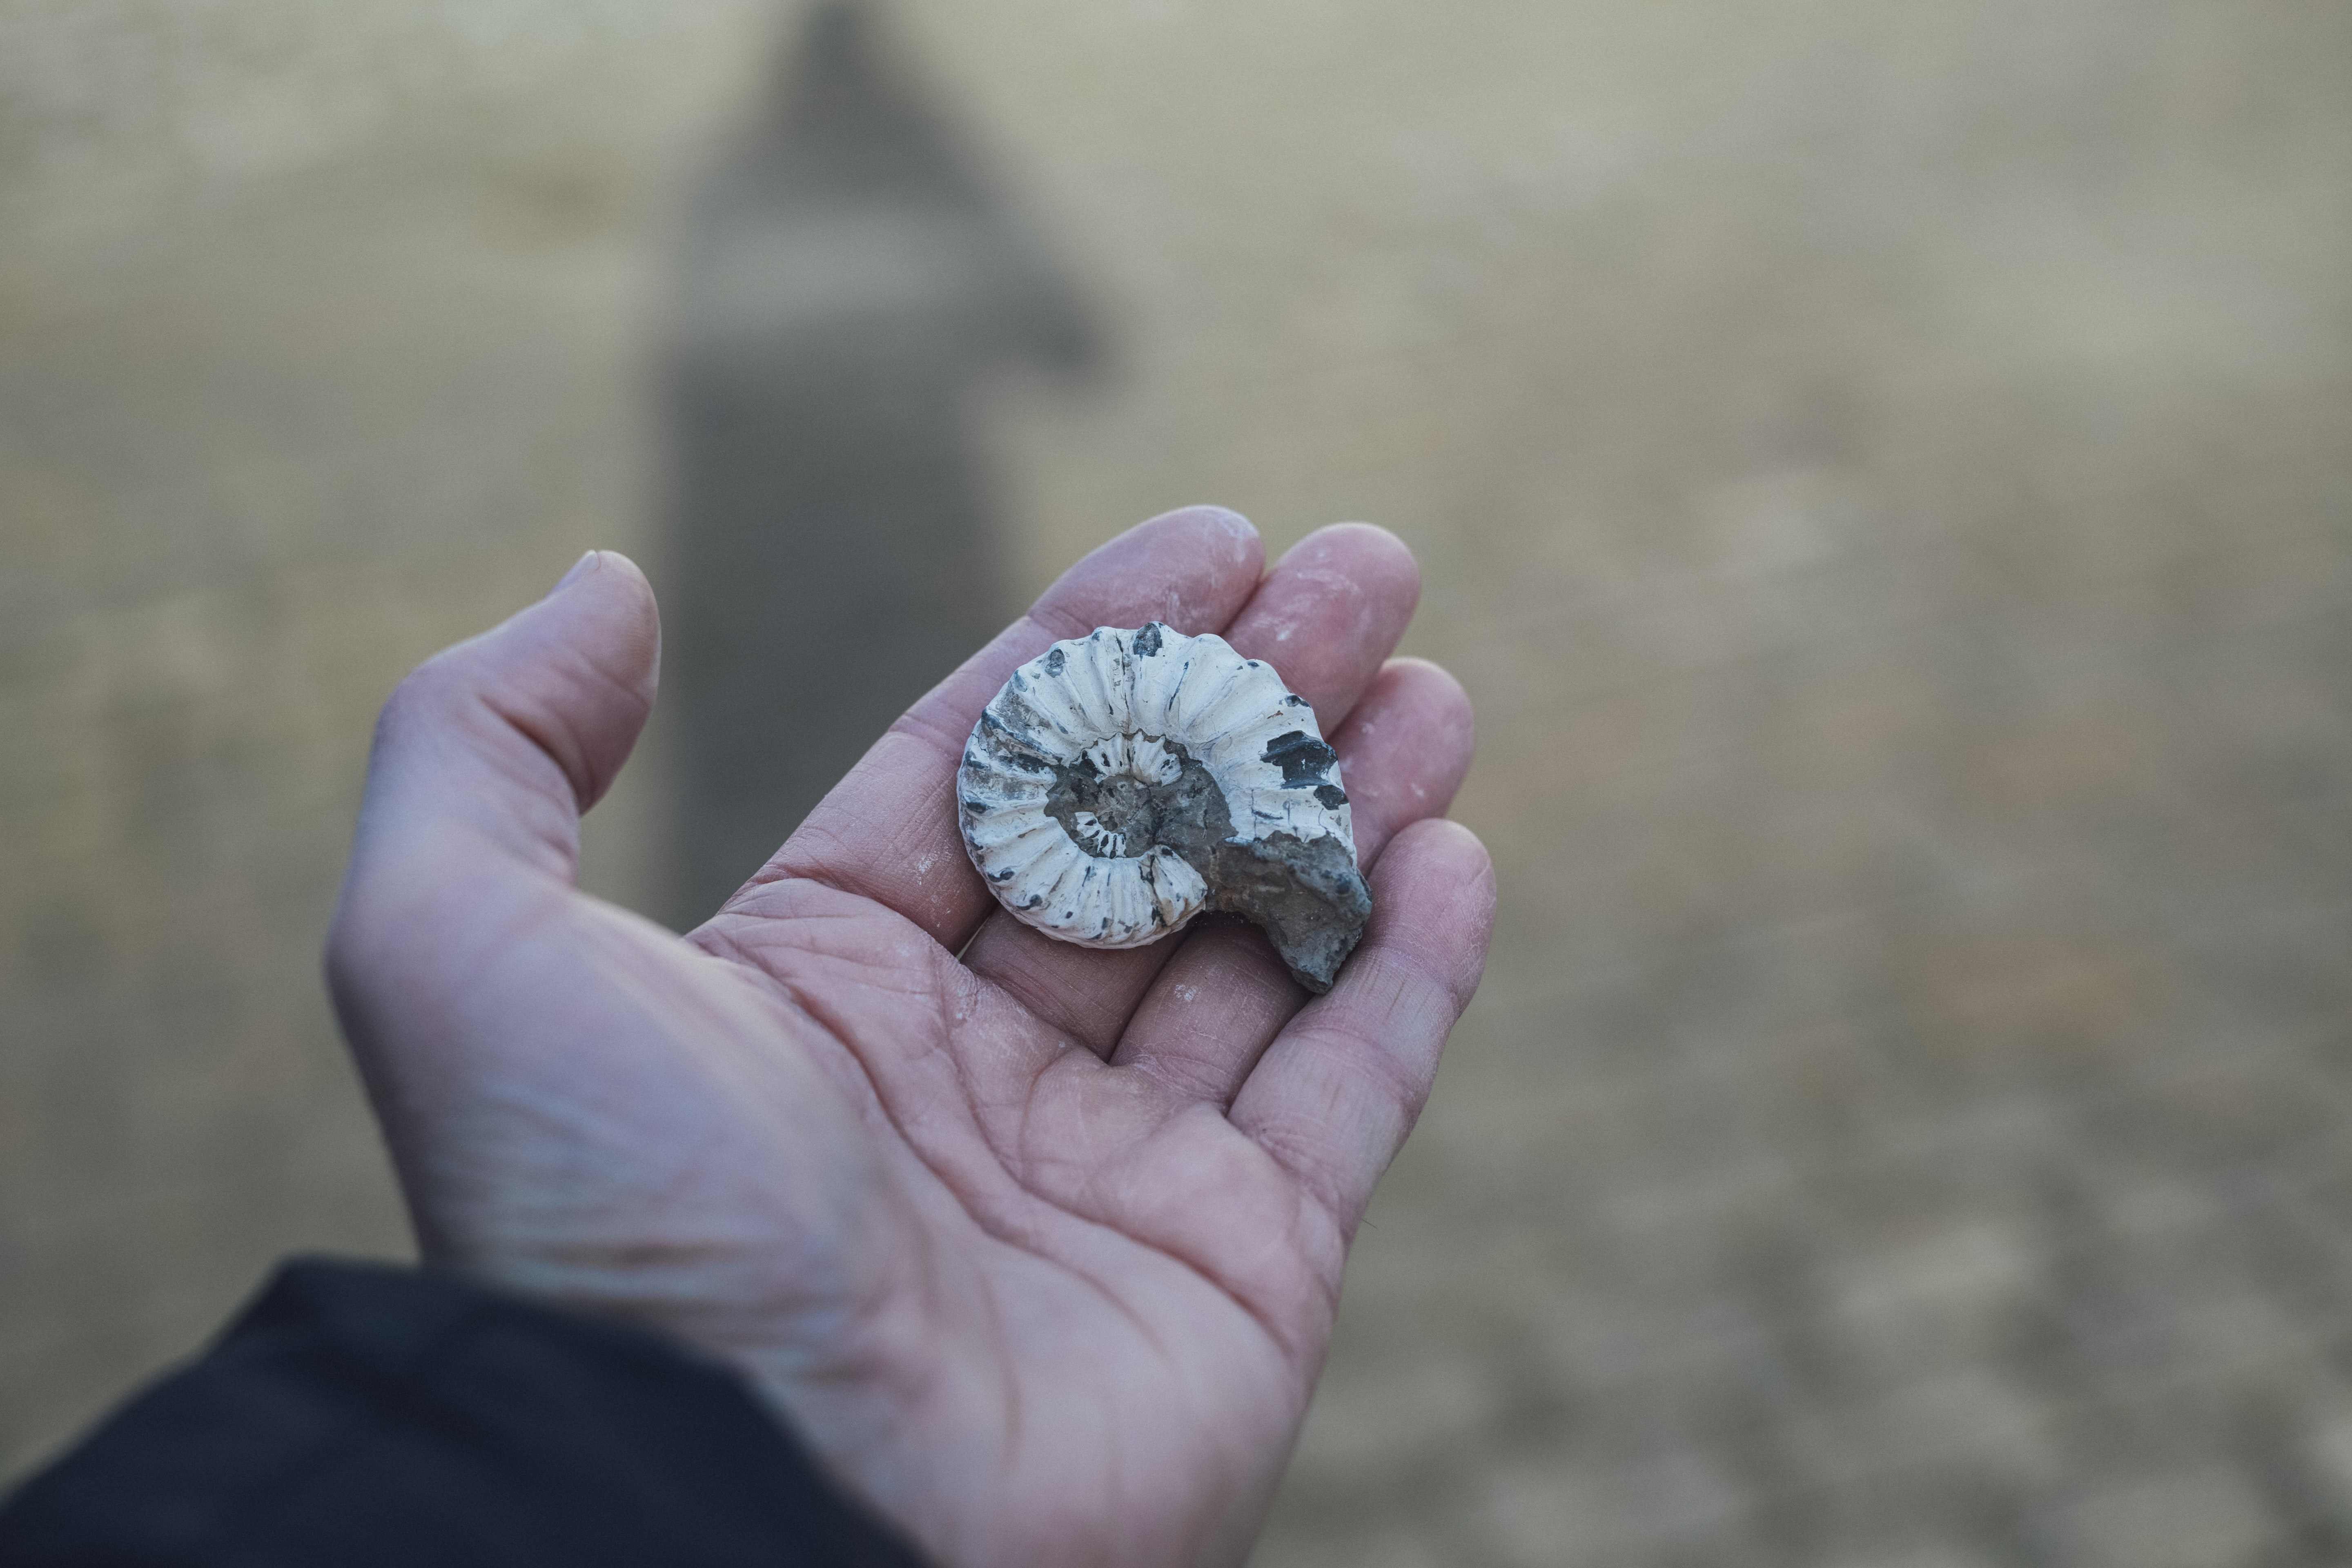 person holding gray and white shell